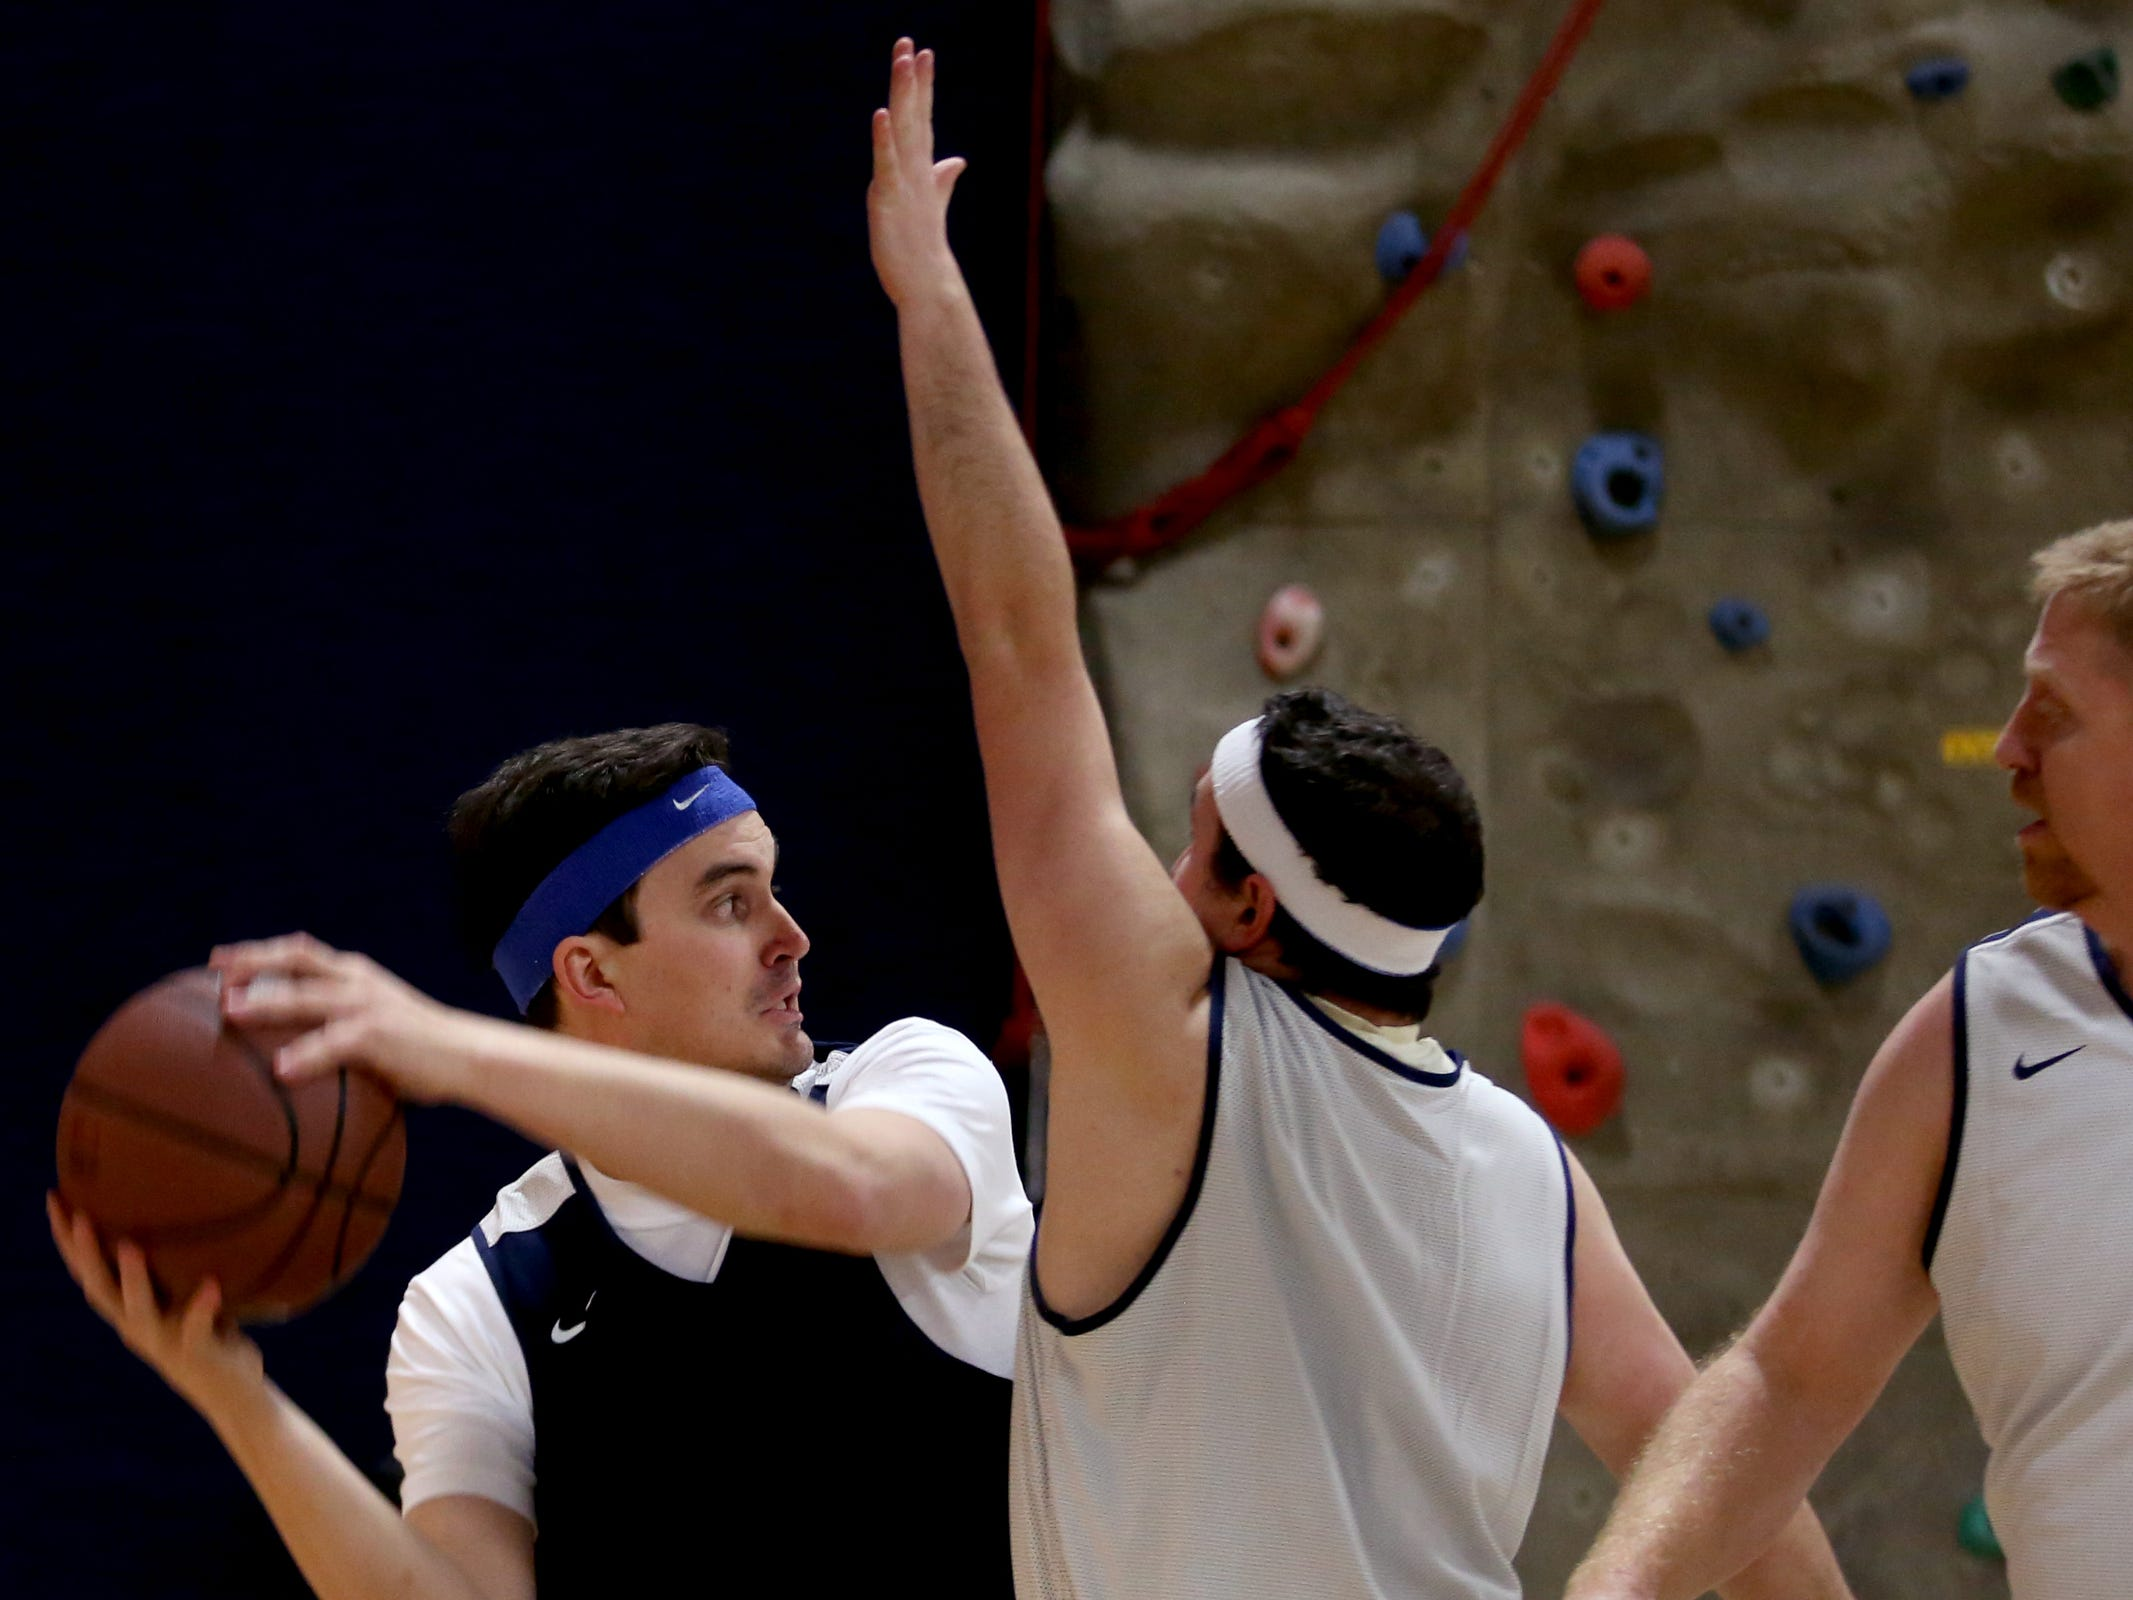 House players compete in the second annual House vs. Senate charity basketball tournament at the Boys & Girls Club in Salem on March 13, 2019. The tournament raised more than $10,000 for the Oregon Alliance of Boys & Girls Clubs.